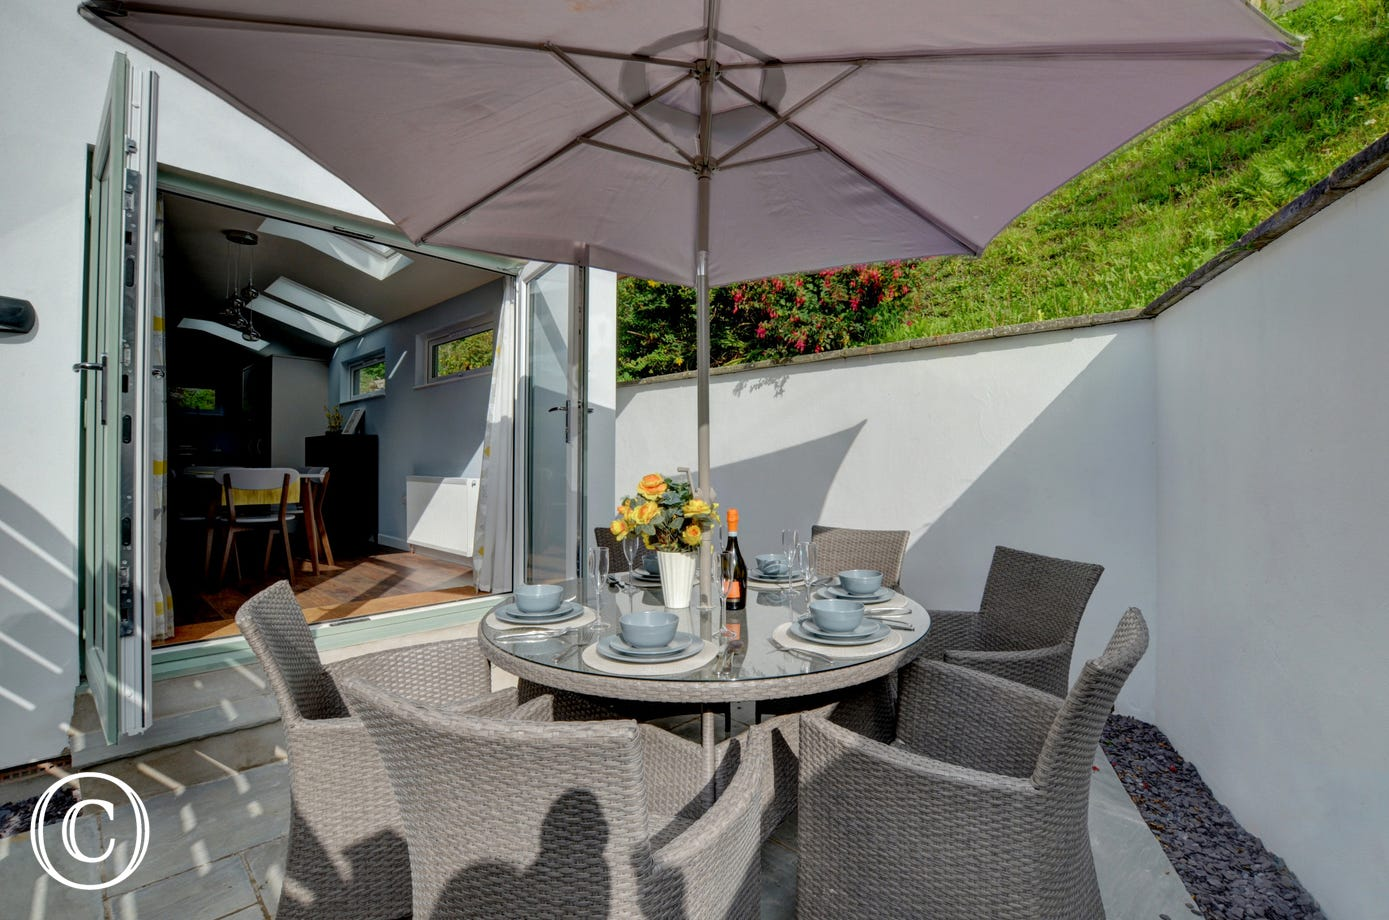 The kitchen has patio doors that lead onto a private patio area, ideal for al fresco dining